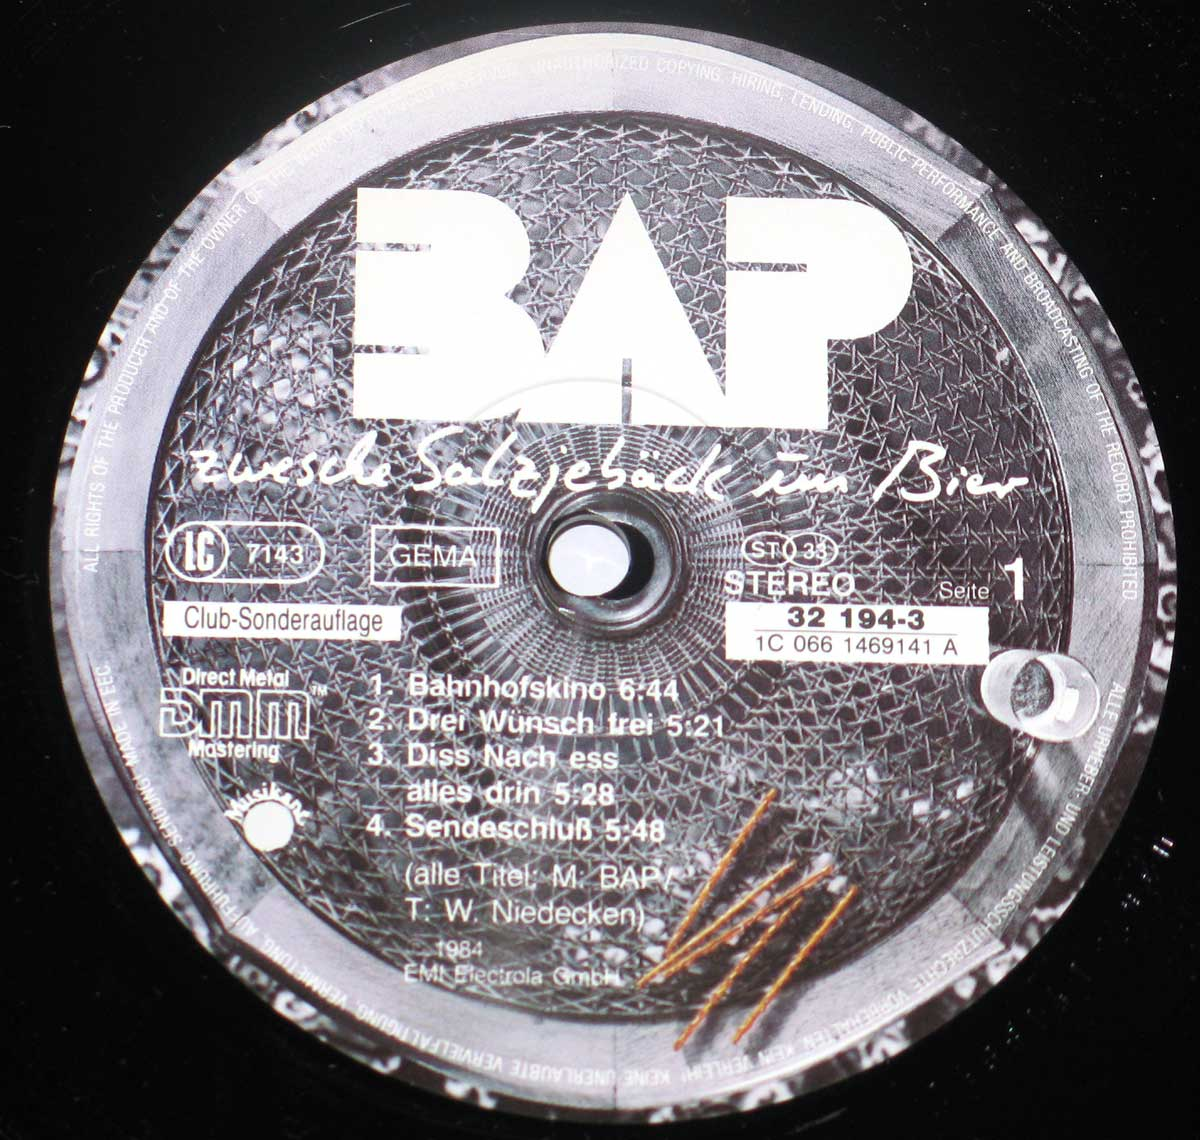 High Resolution Photo BAP ZWESCHE SALZJEBÄCK Vinyl Record